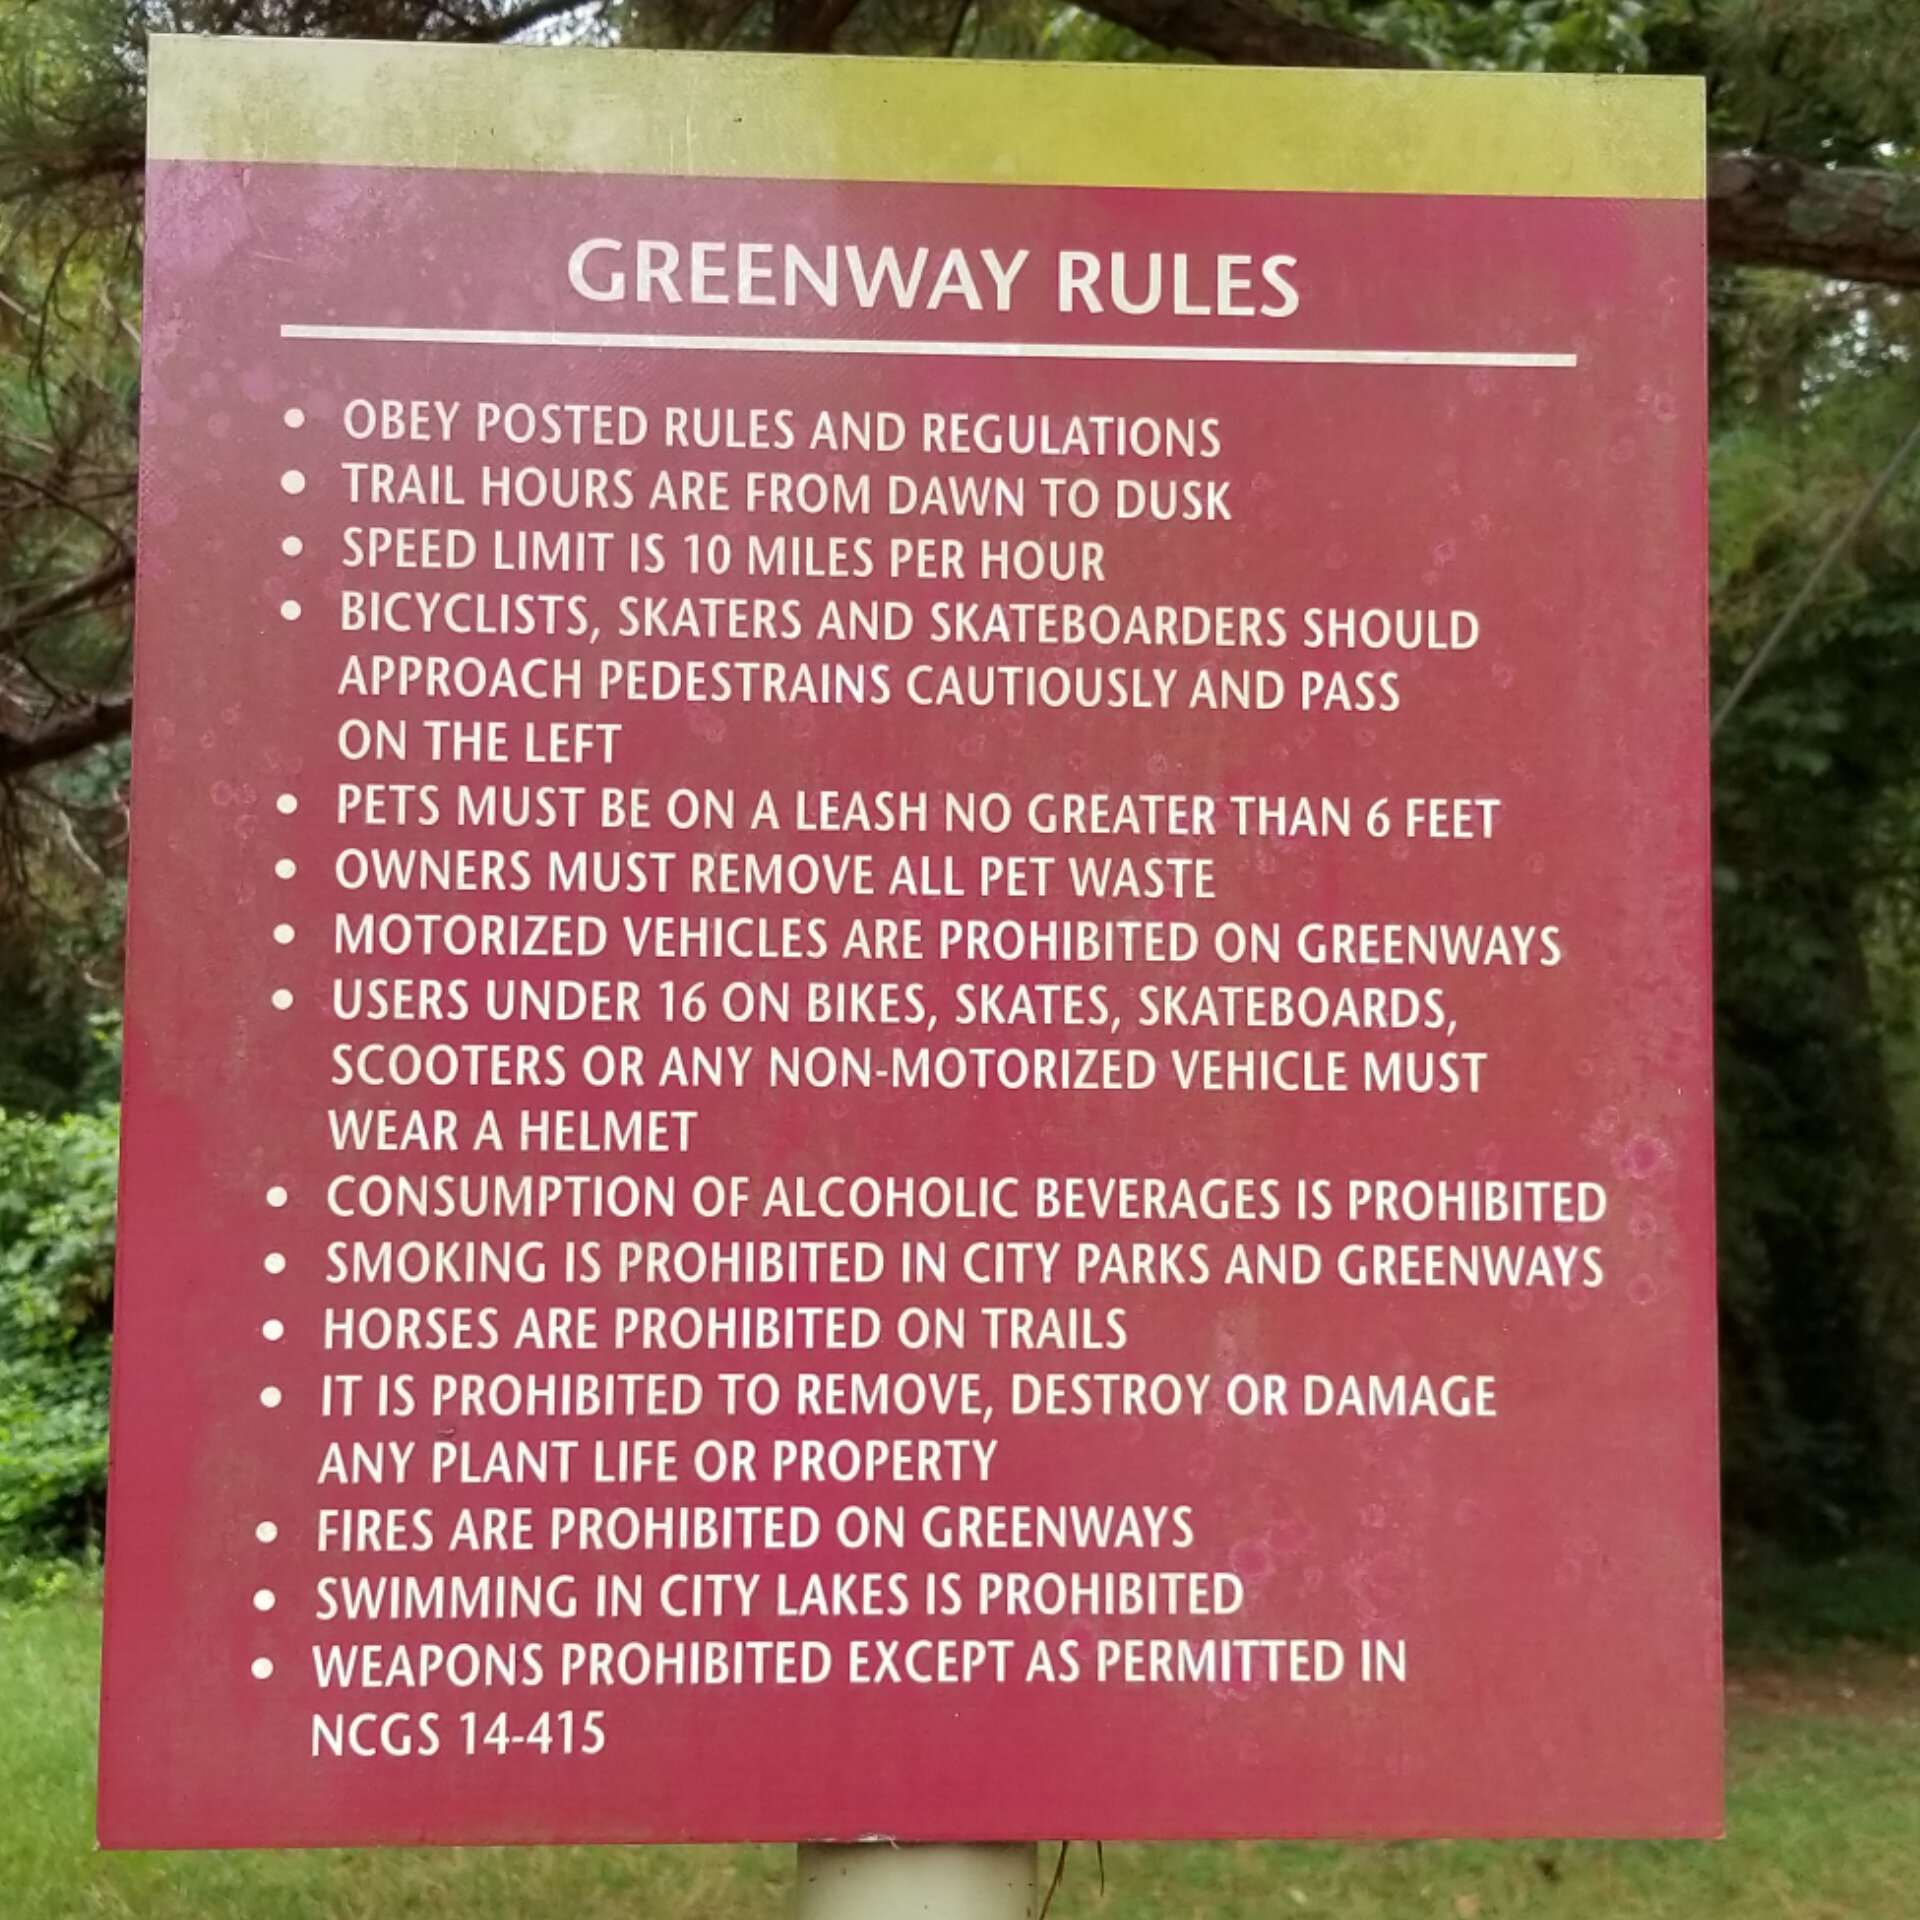 even on the greenway, rules are rules!